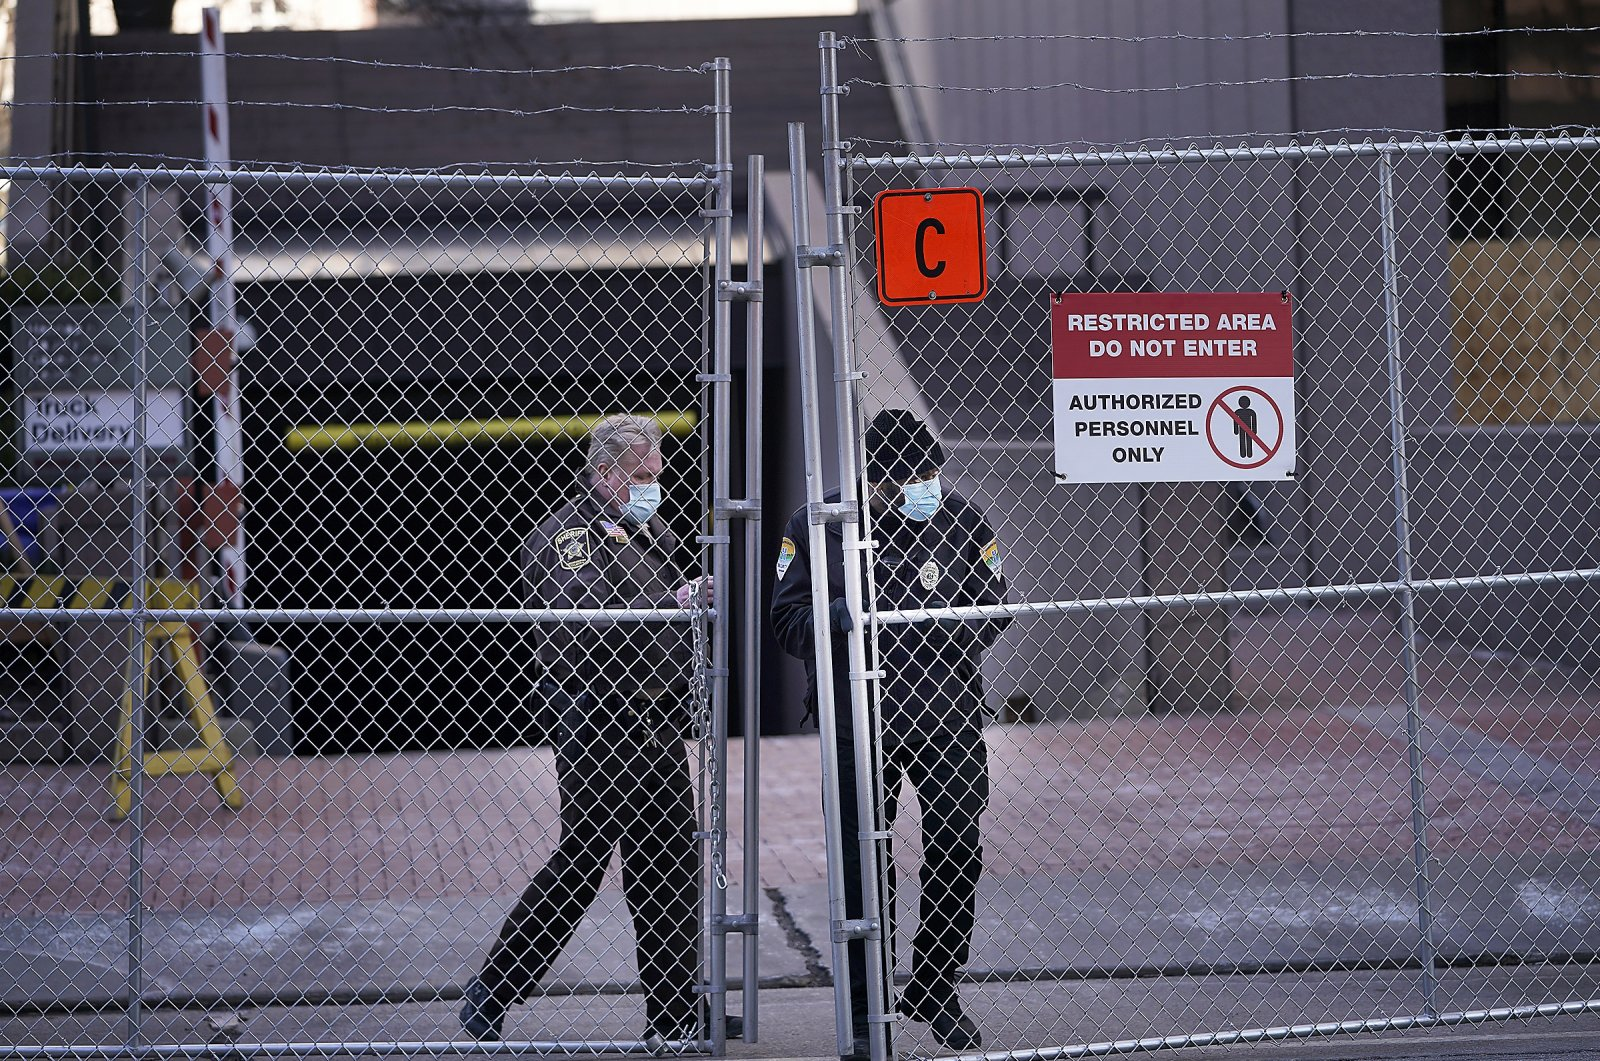 Law enforcement officers open a gate on a fenced perimeter outside the Hennepin County Government Center in Minneapolis, Minnesota, U.S., March 4, 2021. (Star Tribune via AP)